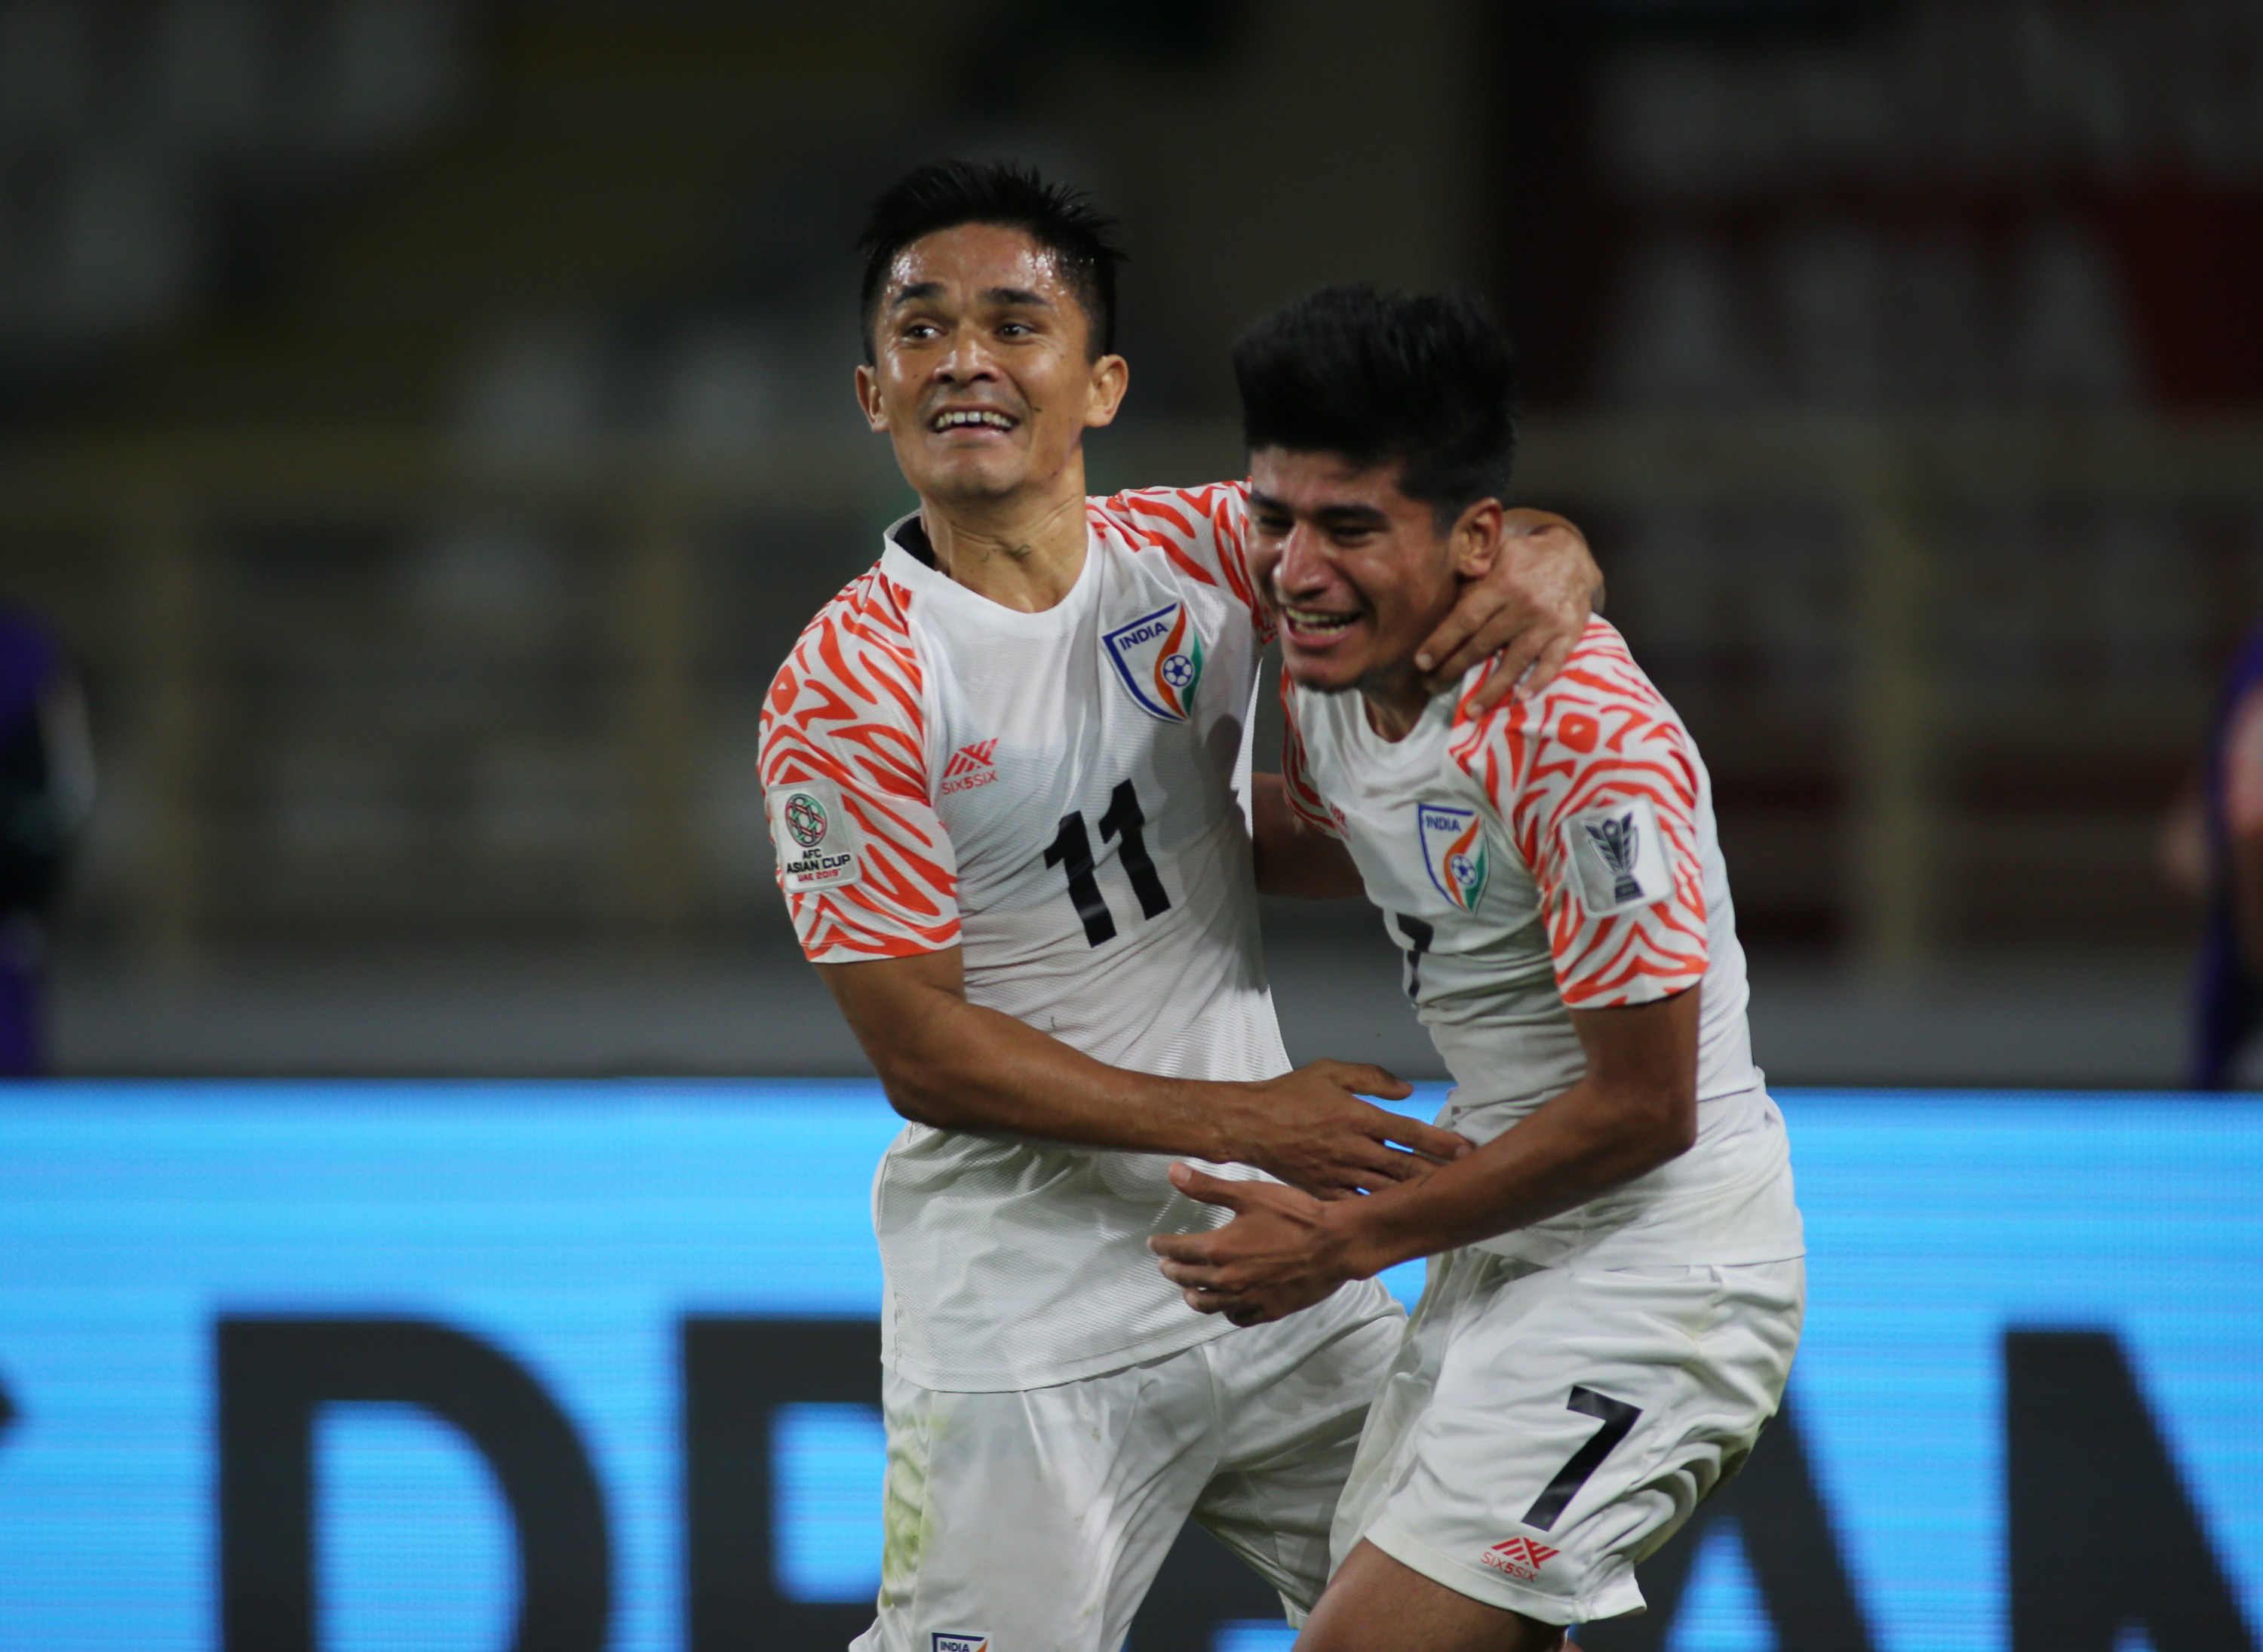 Indian football team's Sunil Chhetri at AFC Asian Cup